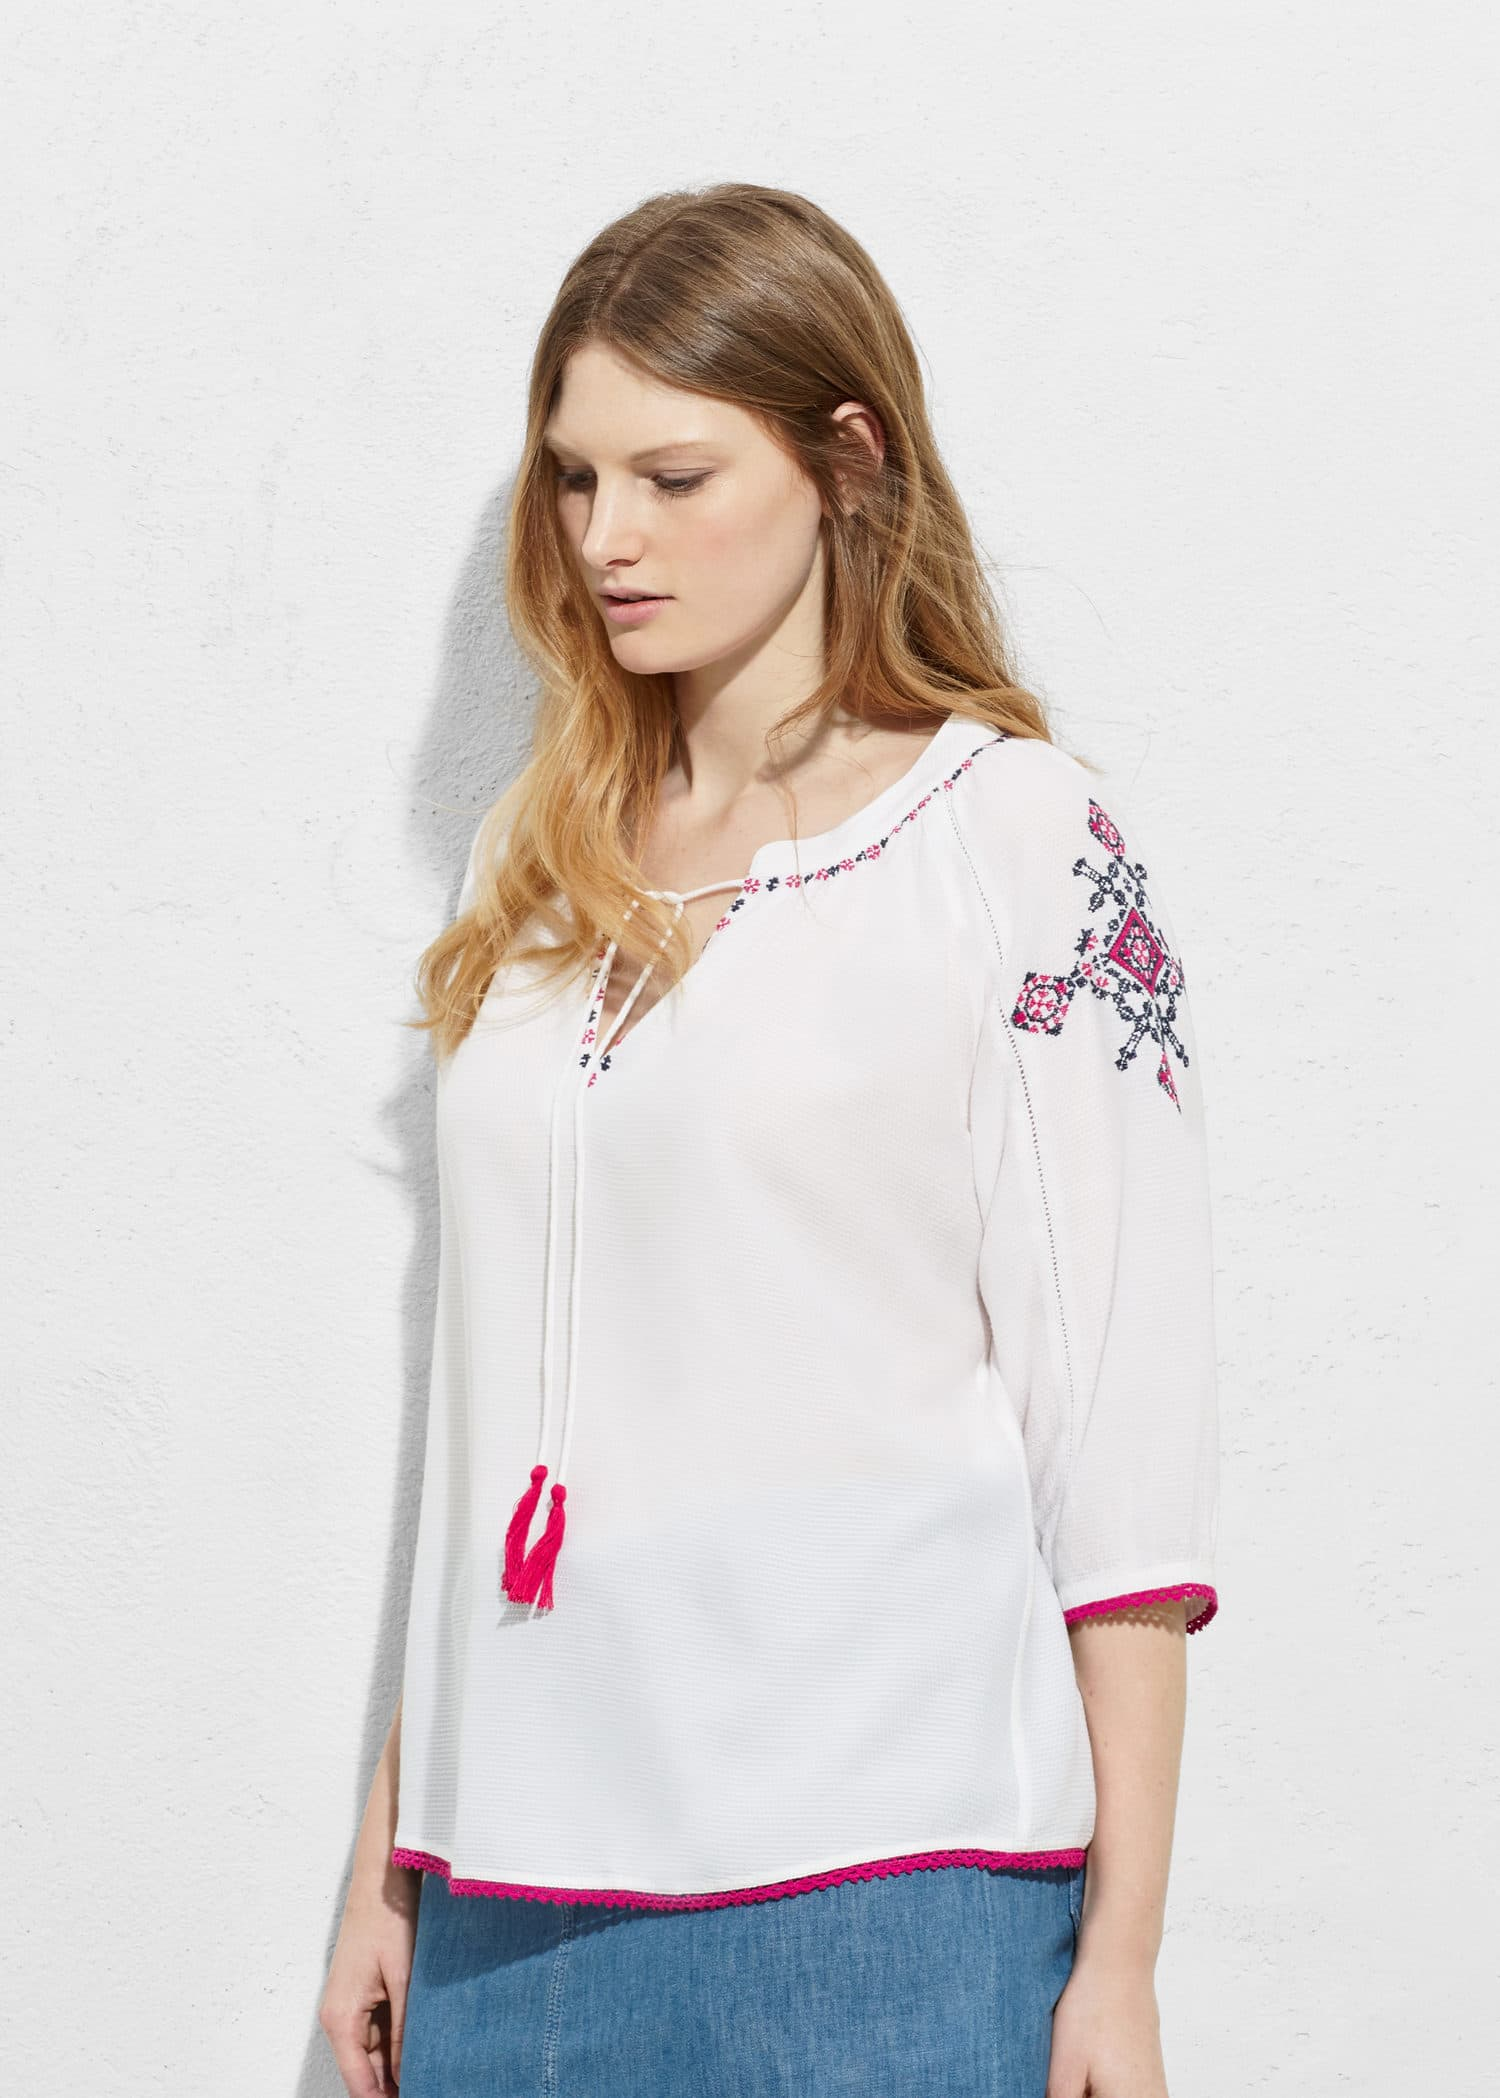 88ee1a65f3dbdf Embroidered boho blouse - Plus sizes